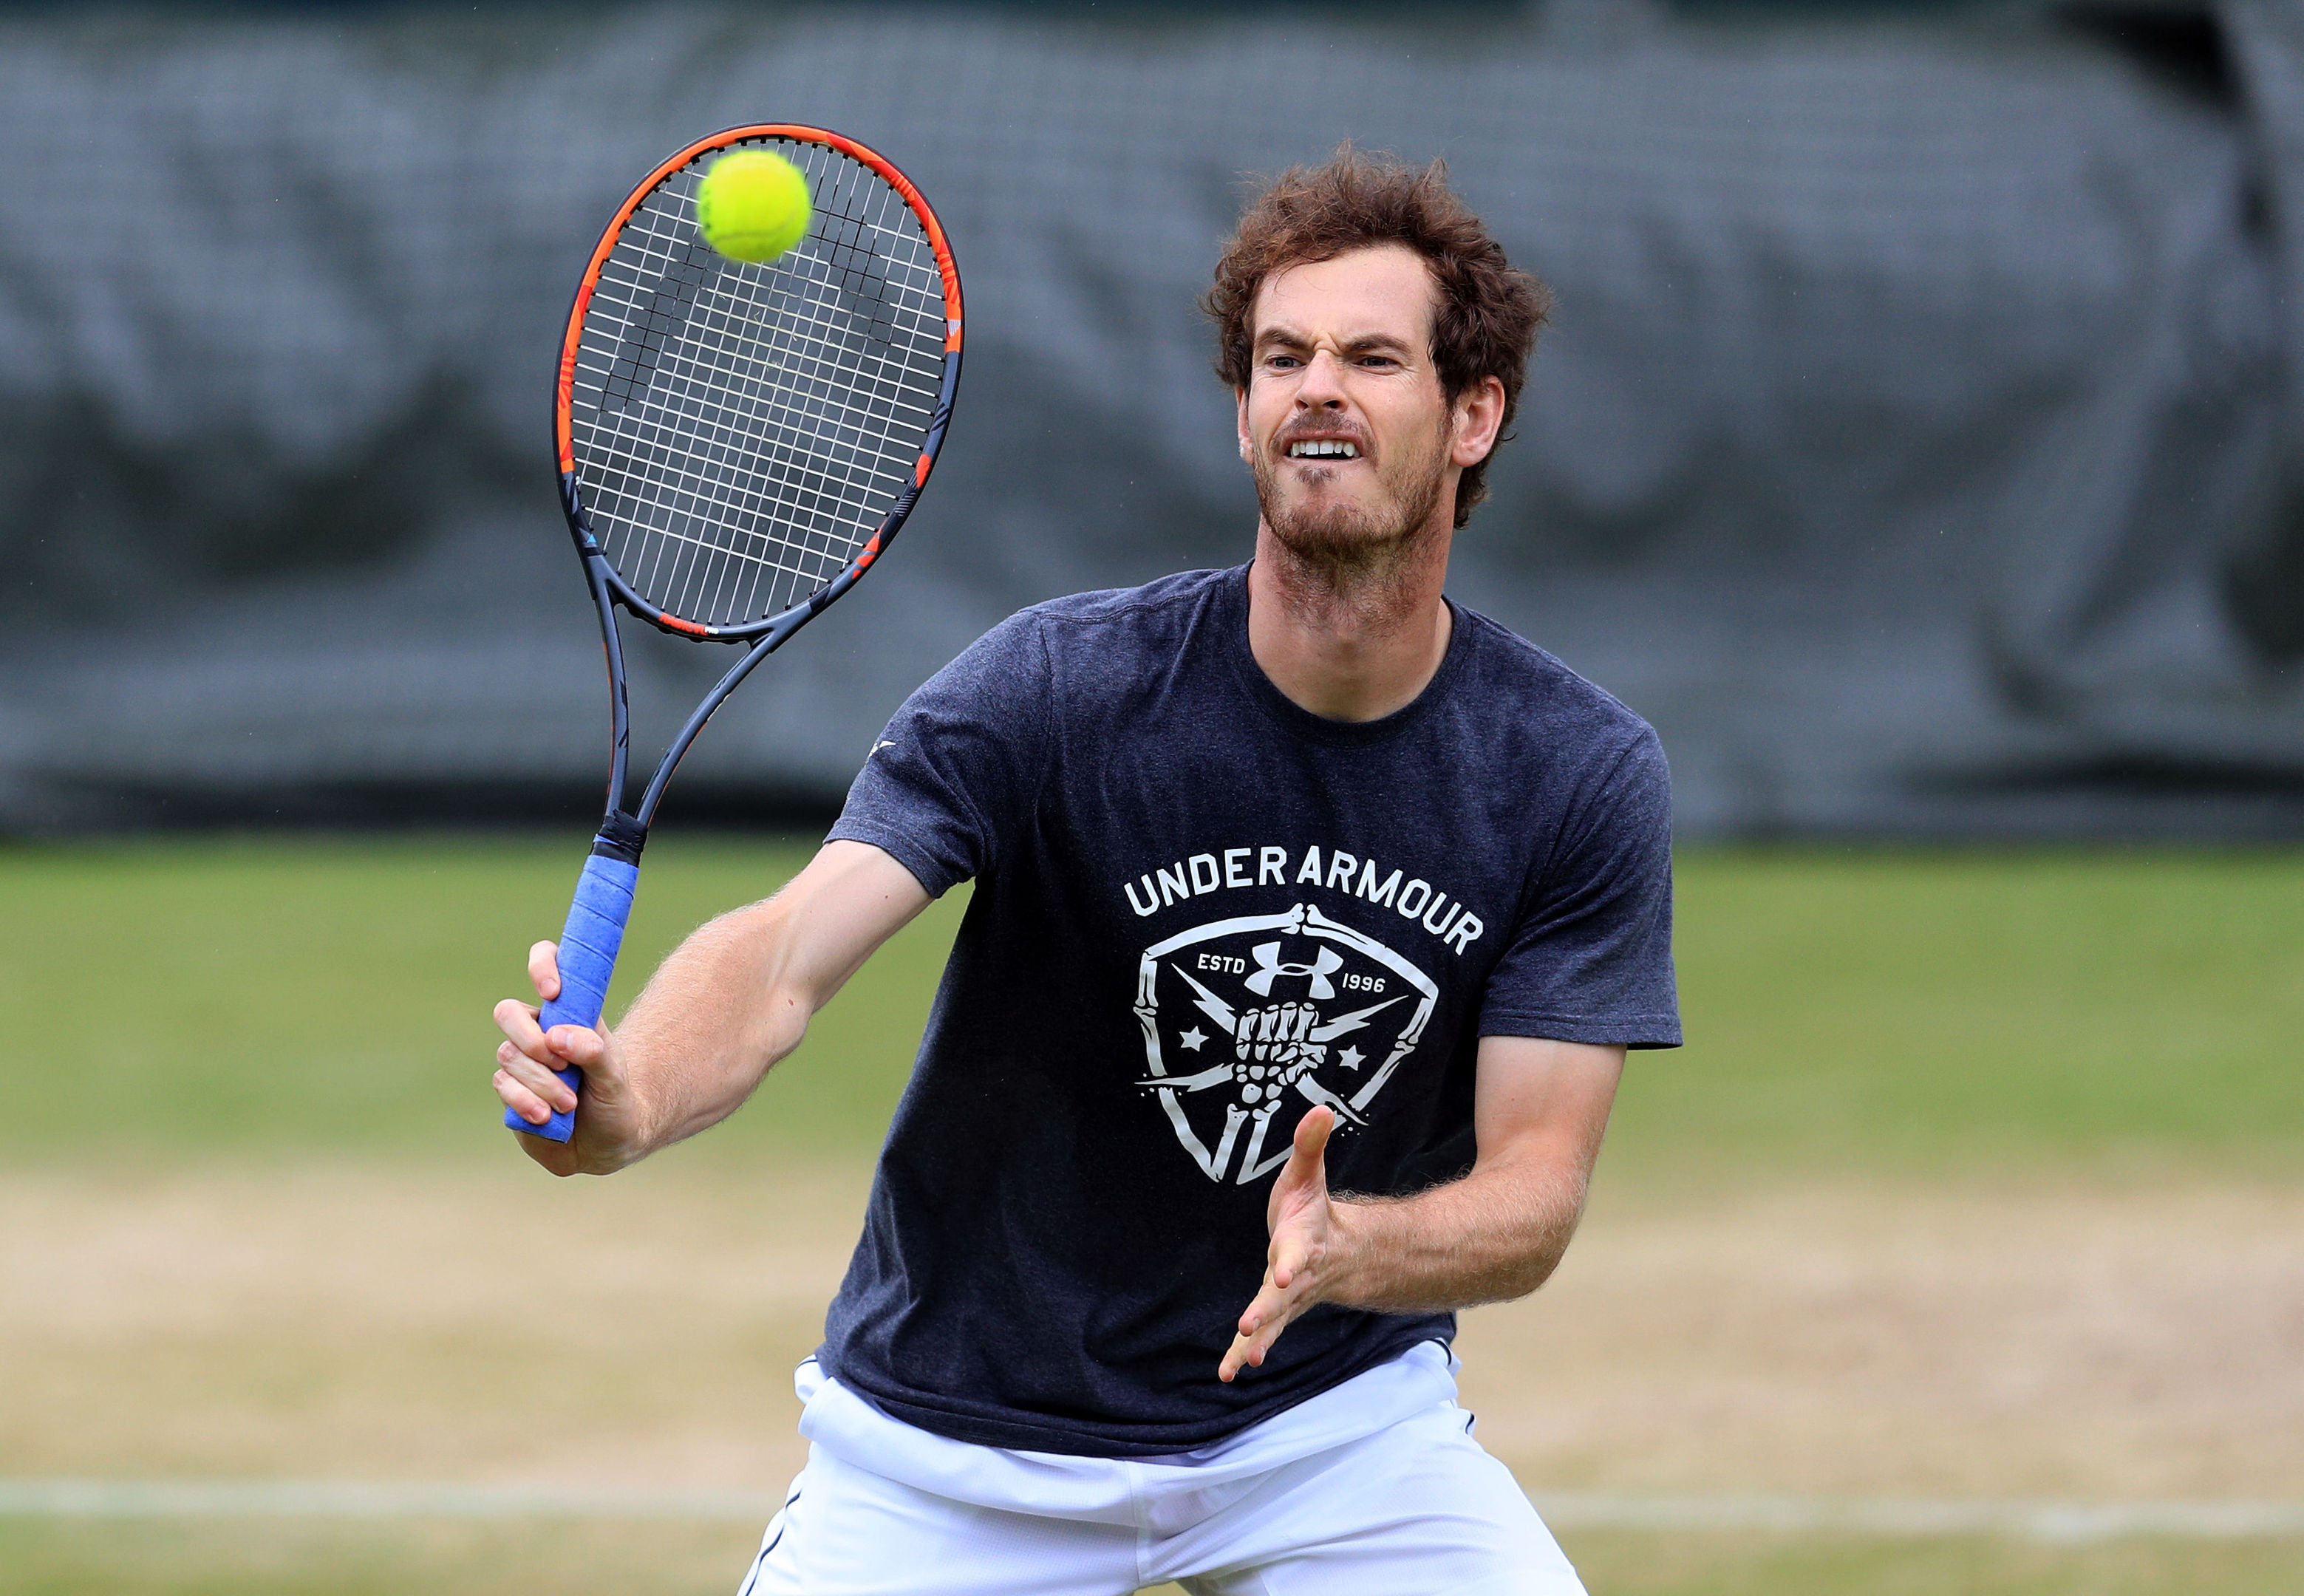 The Australian has said Andy Murray a 'slightly different league' to Djokovic.